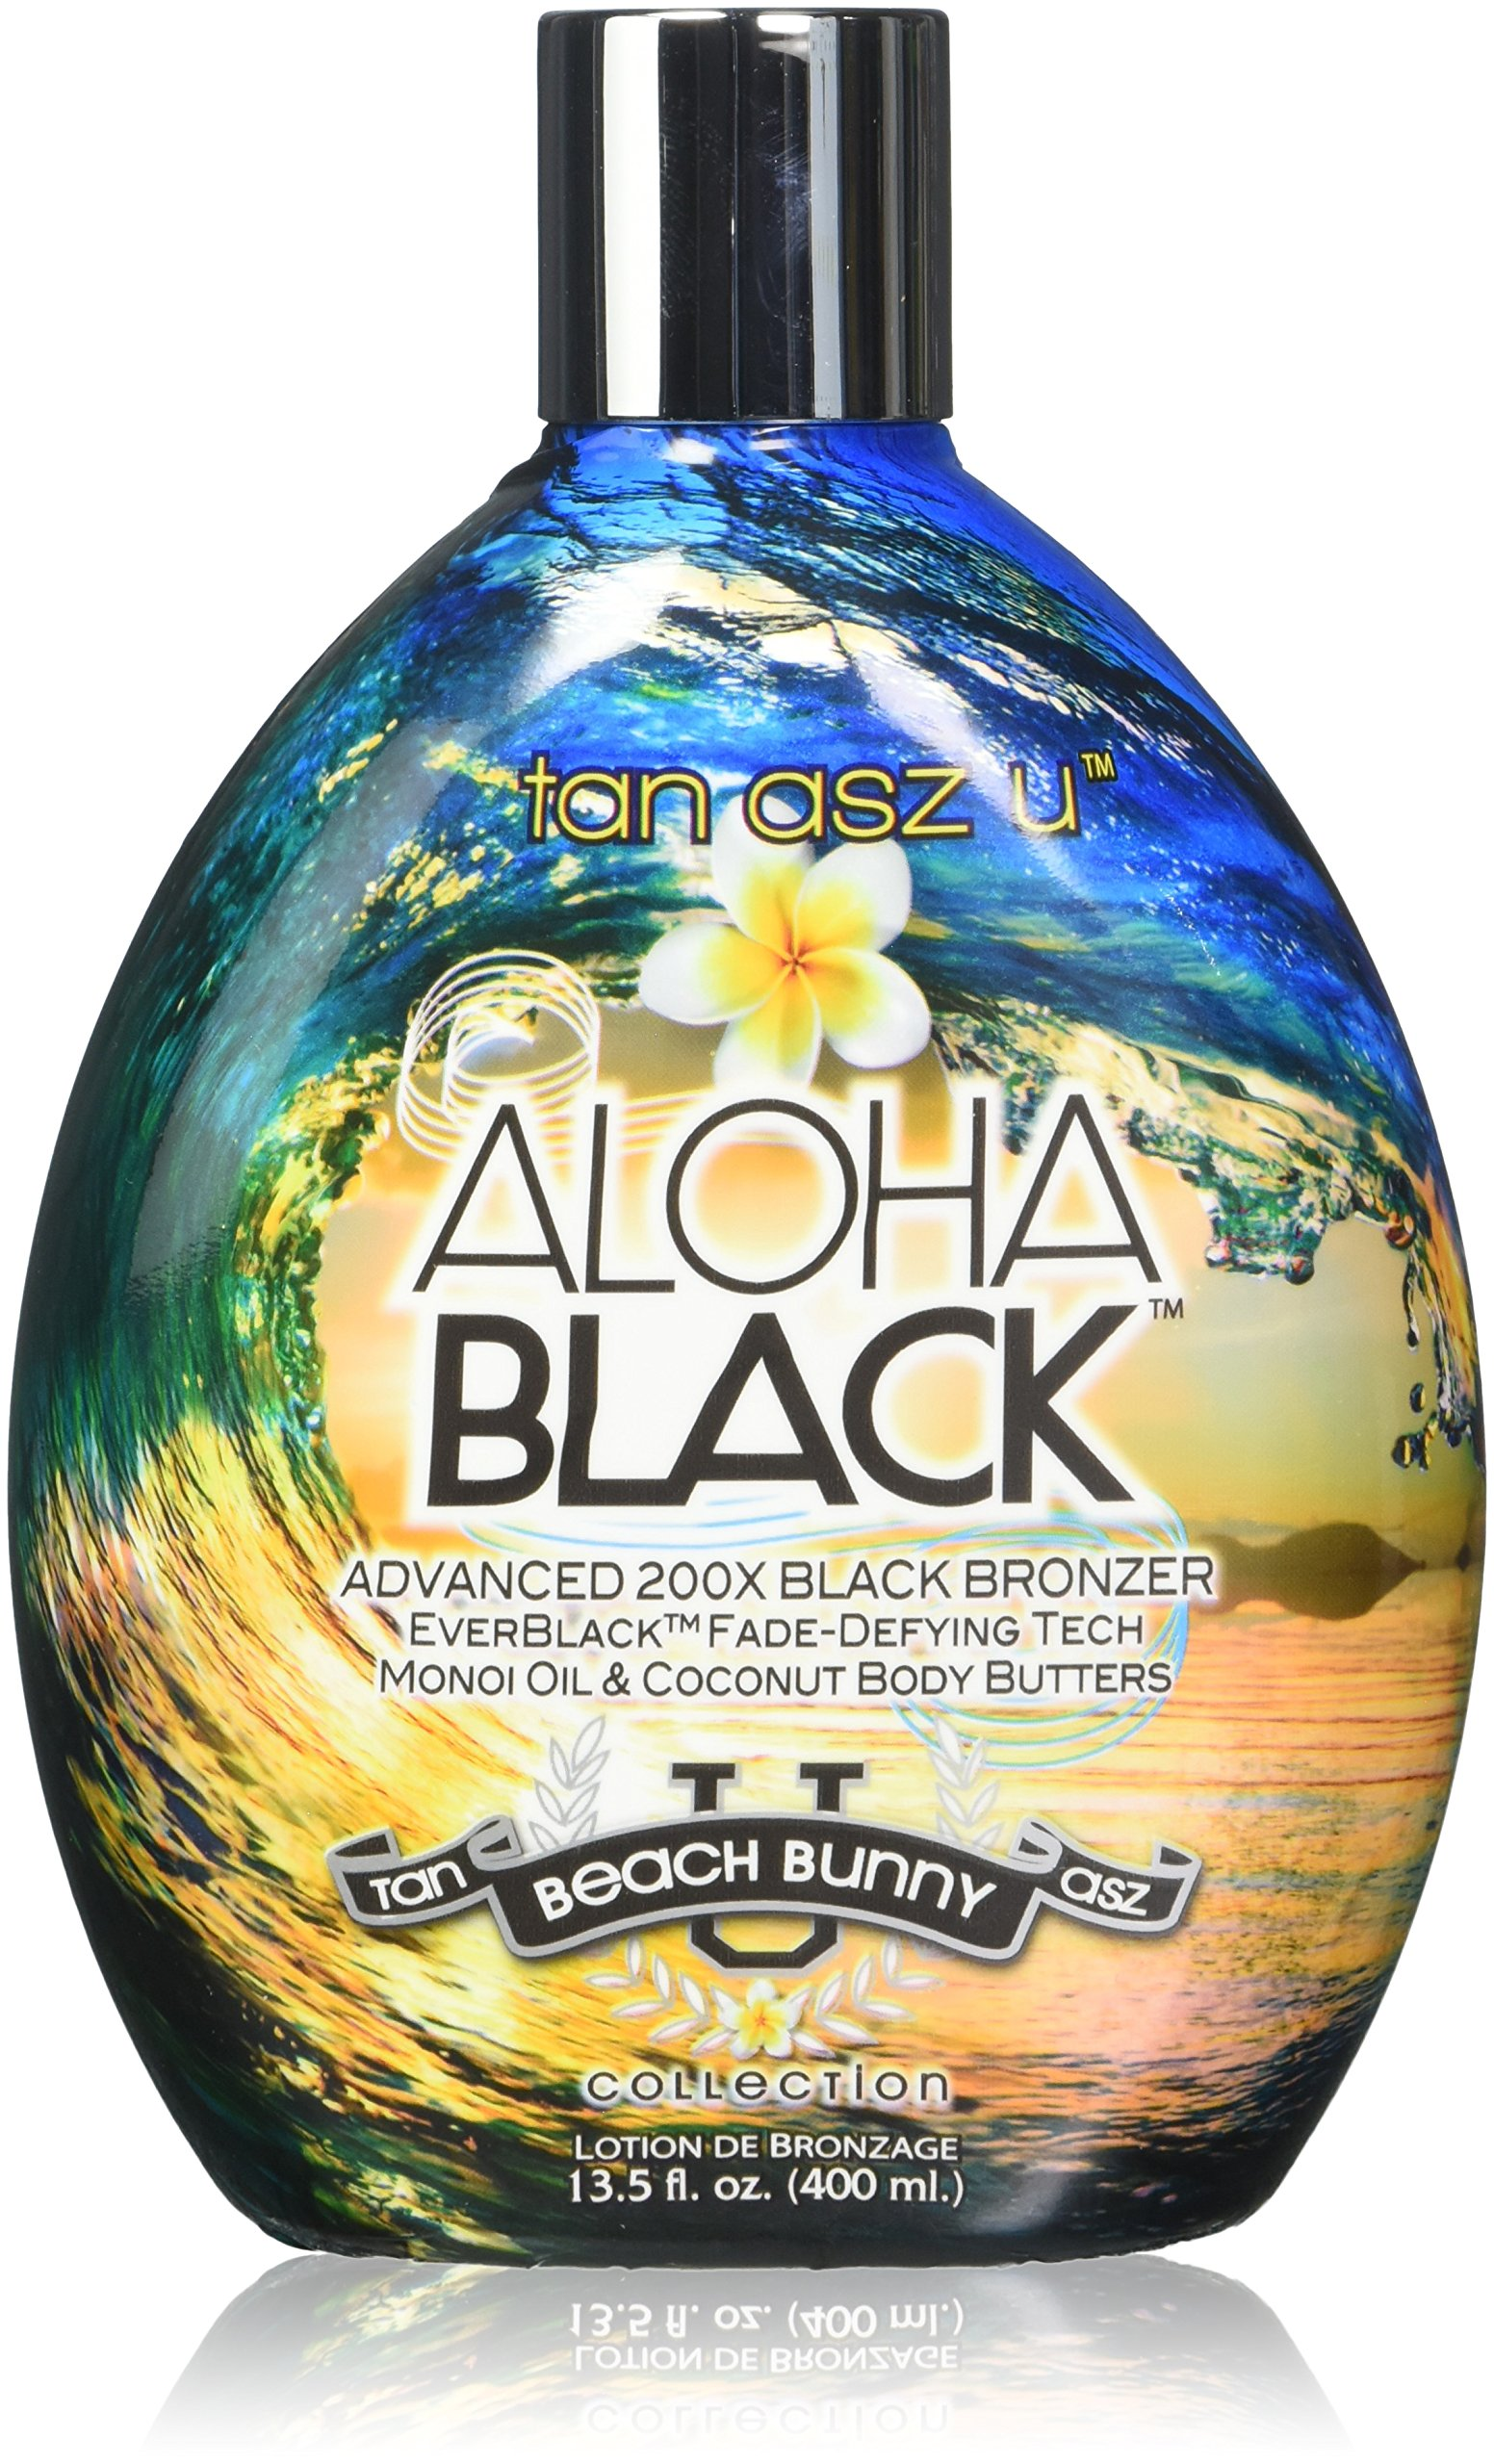 Tan Asz U ALOHA BLACK Advanced 200X Black Bronzer - 13.5 oz.